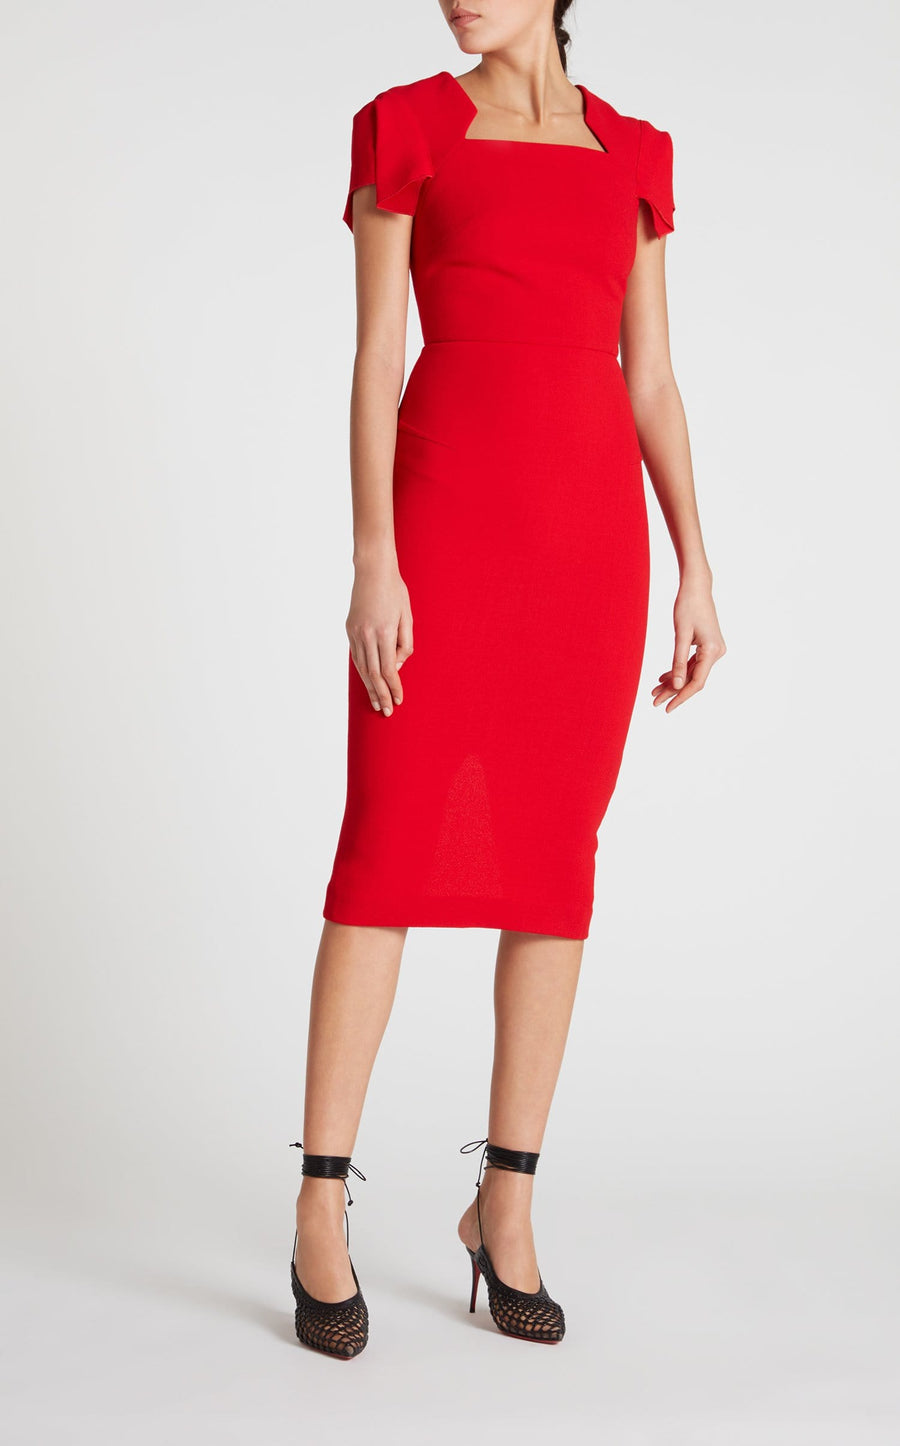 Royston Dress In Poppy Red from Roland Mouret